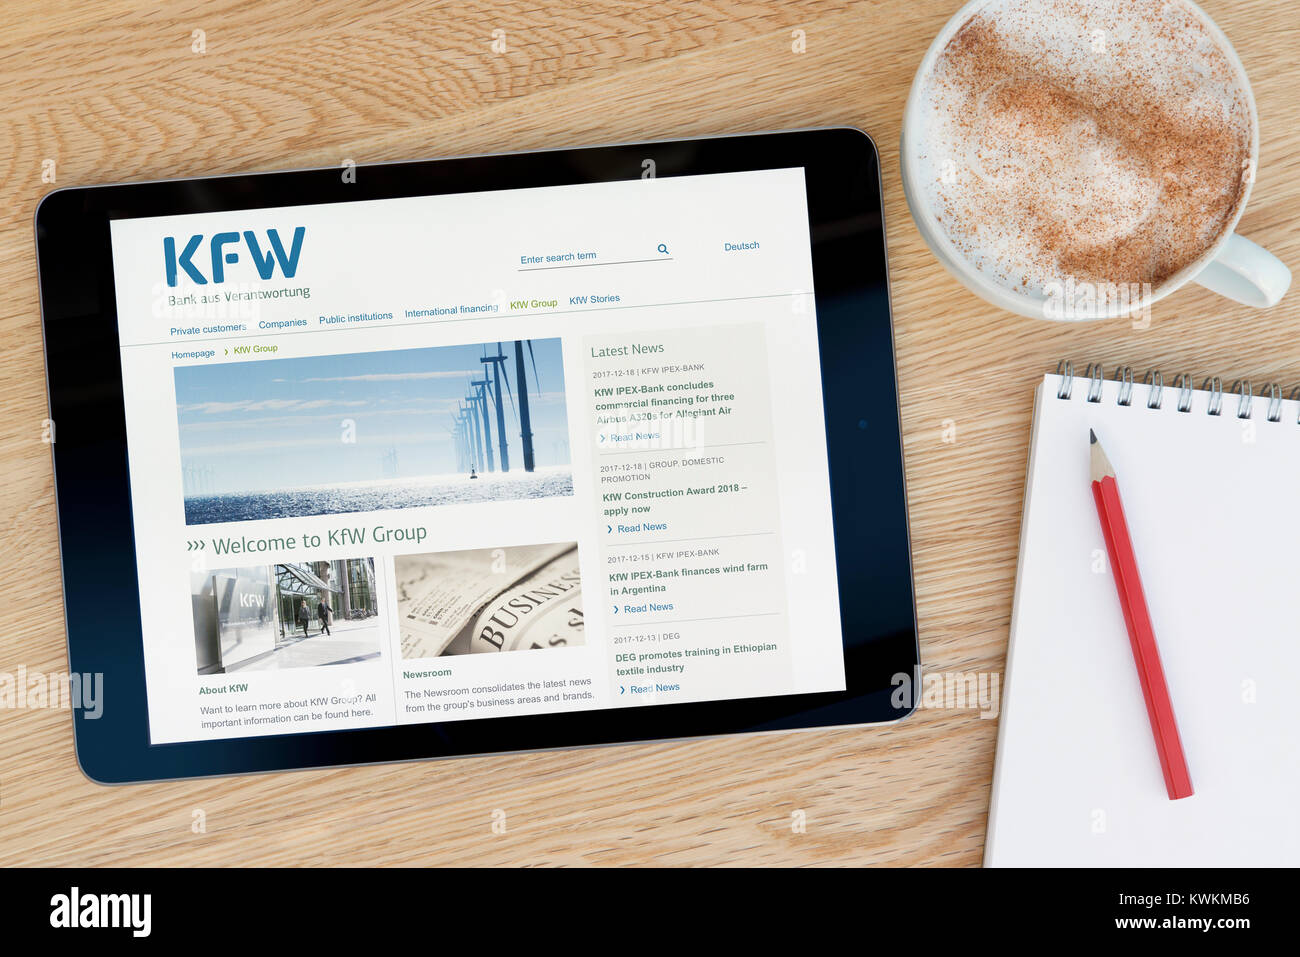 The KfW Group website on an iPad tablet device, resting on a wooden table beside a notepad, pencil and cup of coffee - Stock Image